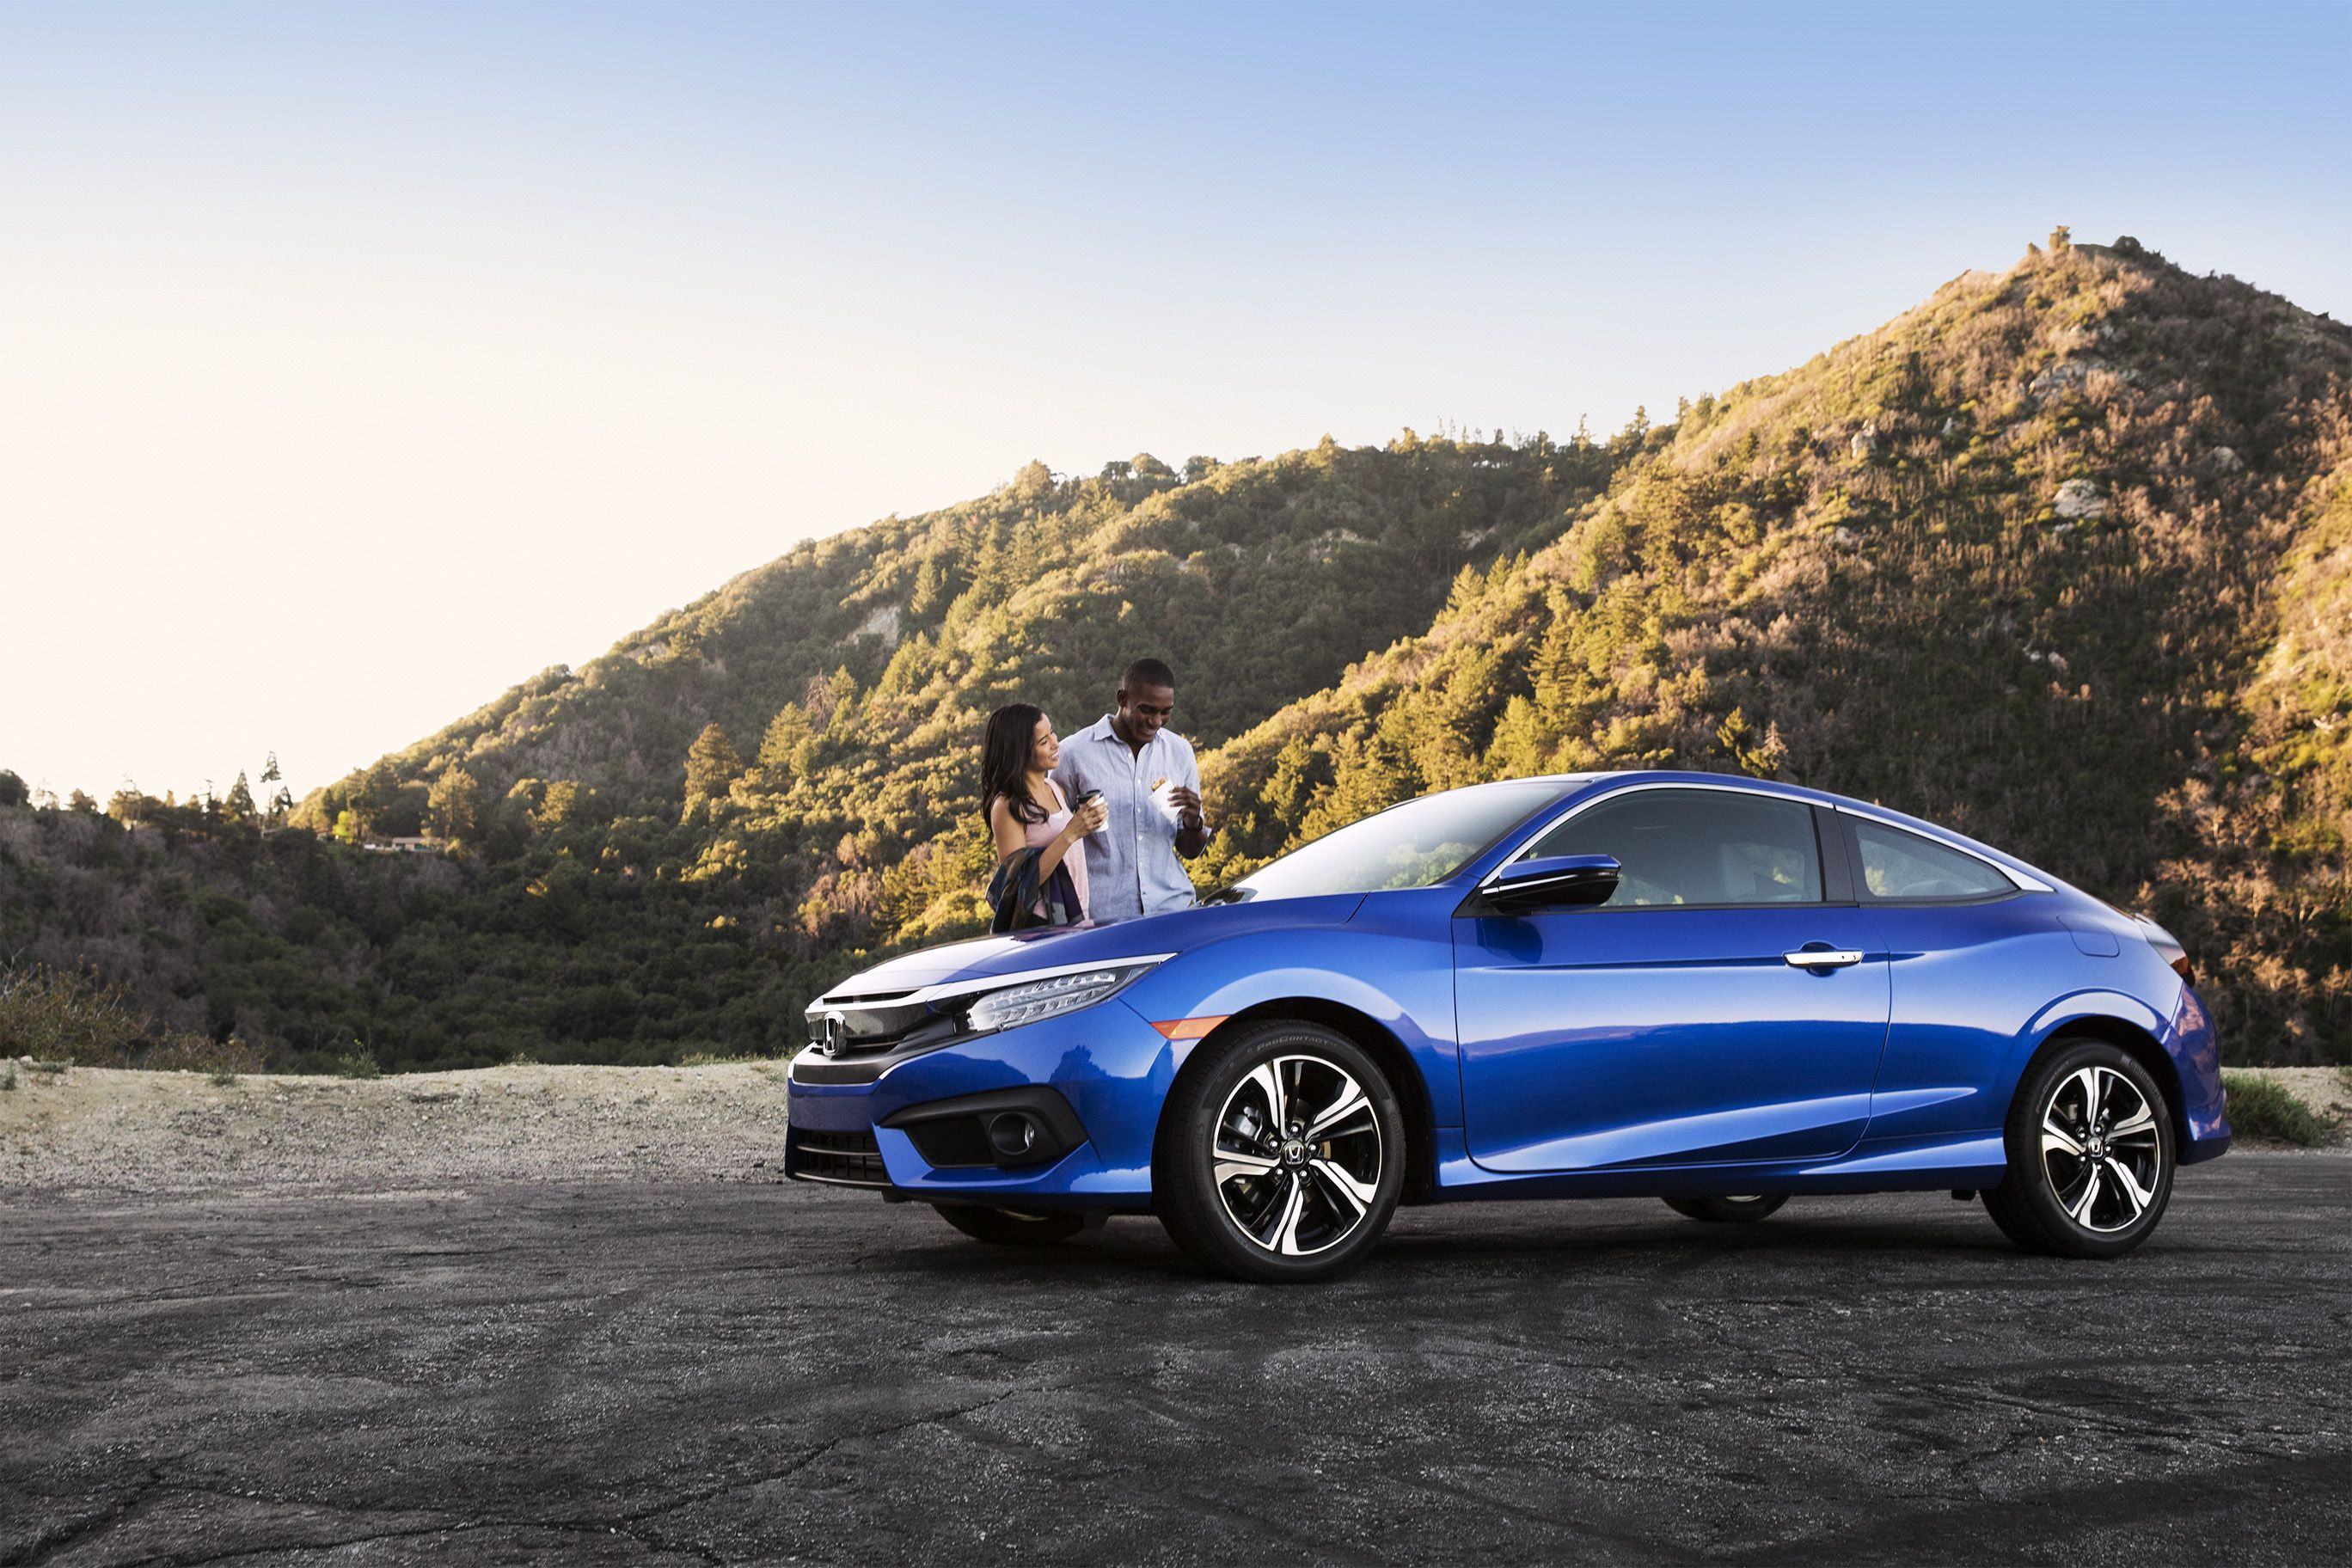 With a turbocharged 174hp engine, the 2016 Civic Coupe is